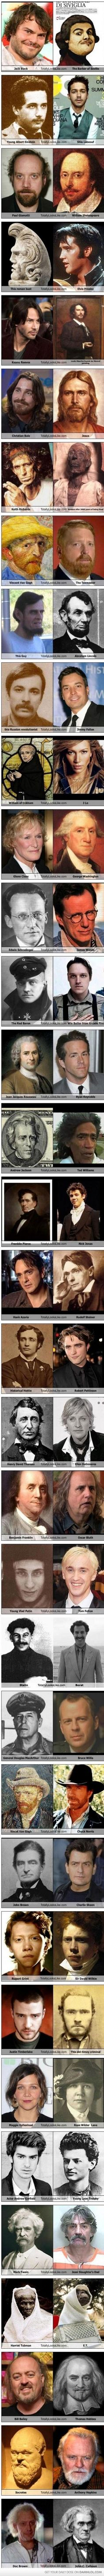 when celebs look like people from history.....